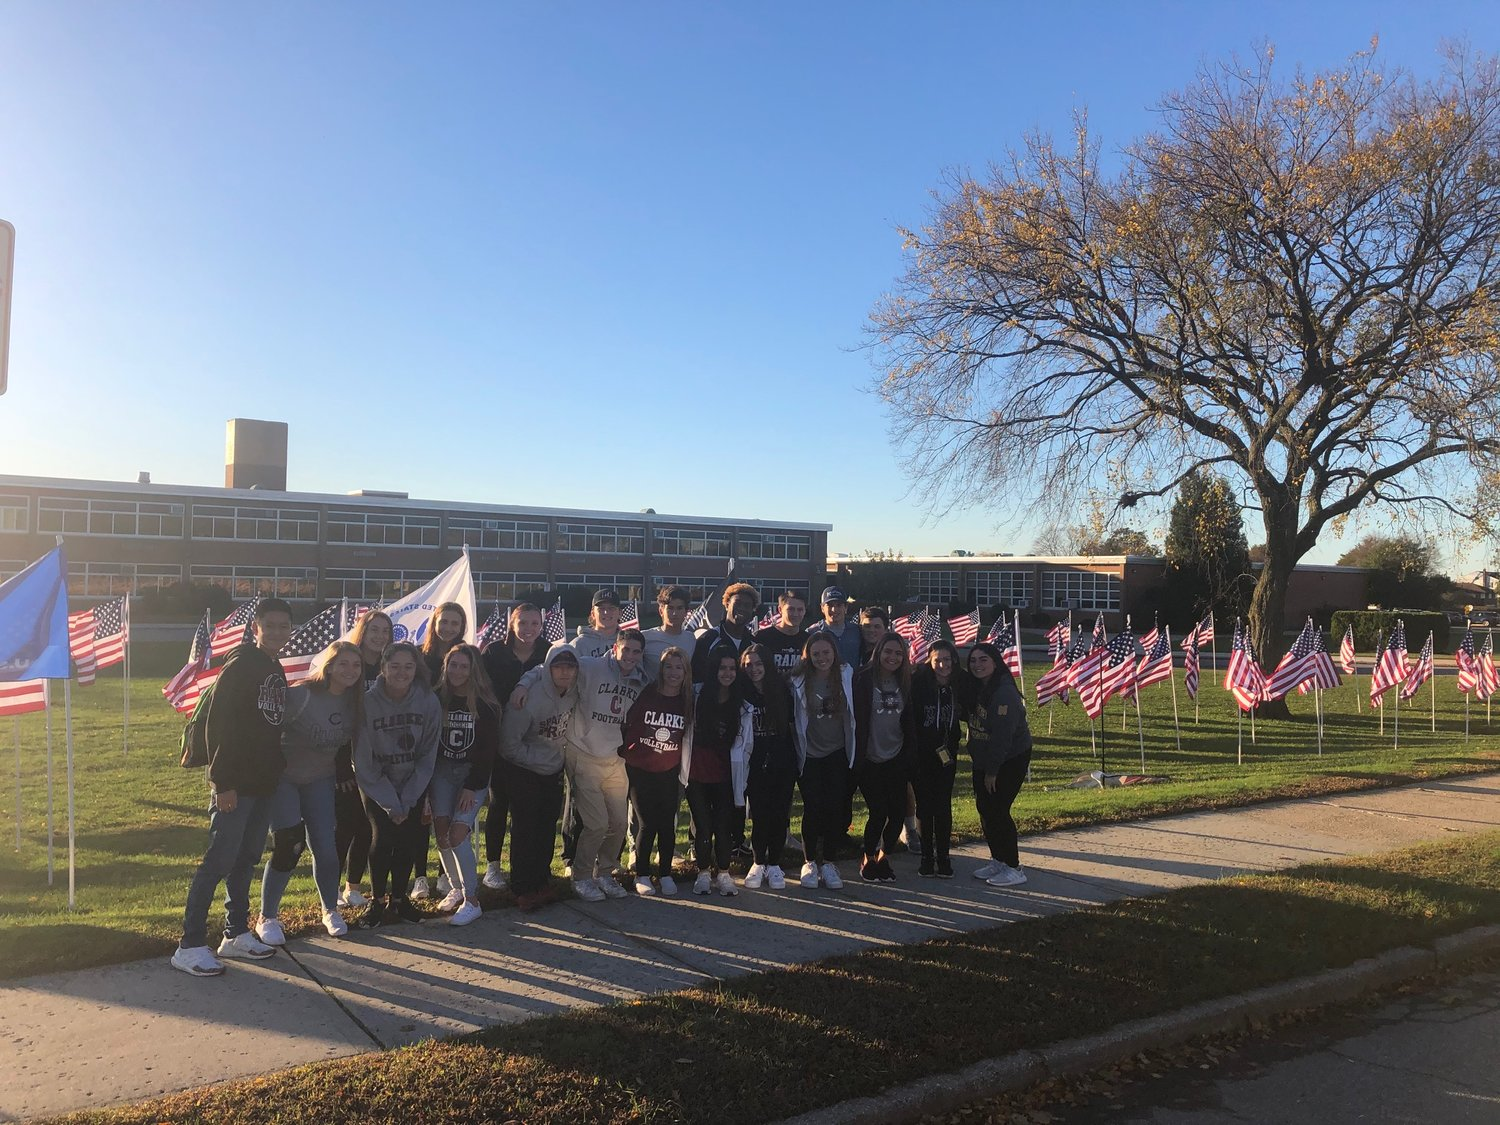 The W.T. Clarke High School Athletes Helping Athletes service club visited the Field of Honor at their school.